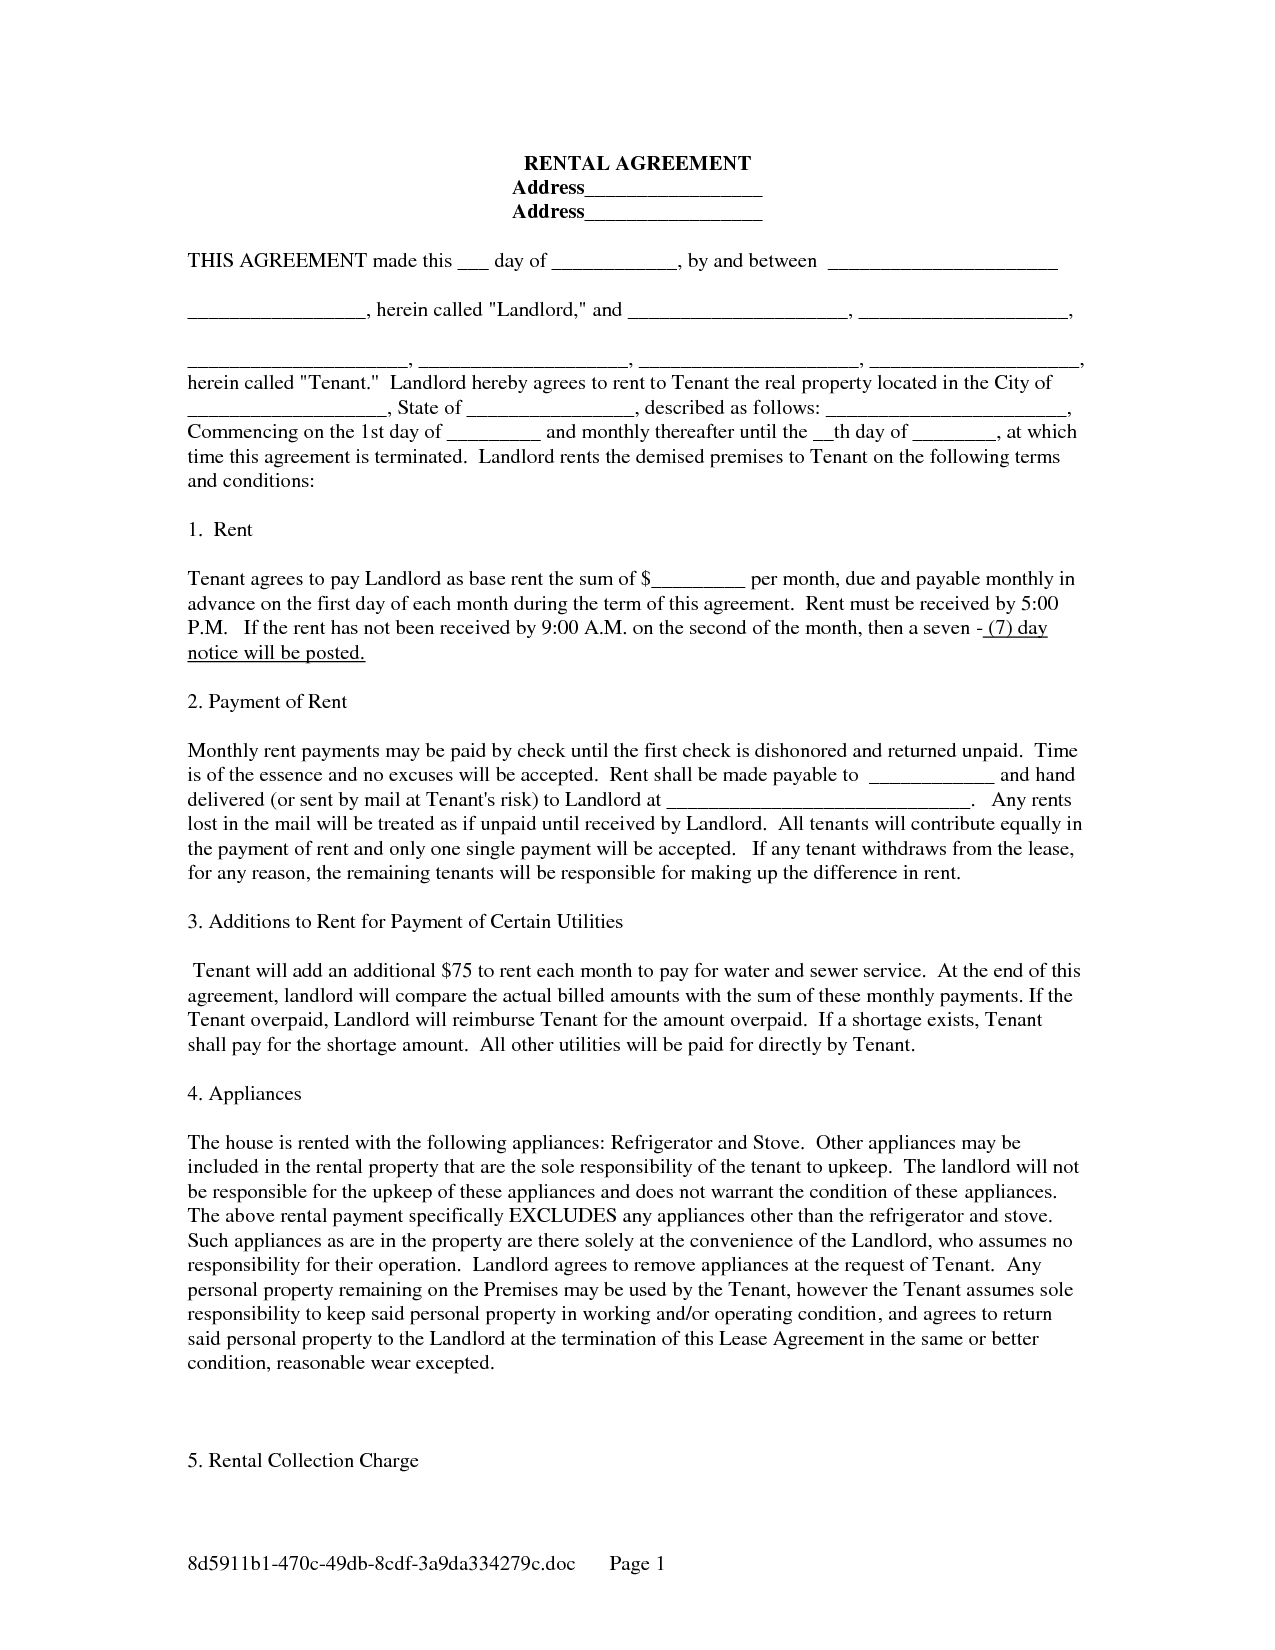 Printable Rental Lease Agreement Form For Free | Shop Fresh - Free Printable Lease Agreement Forms